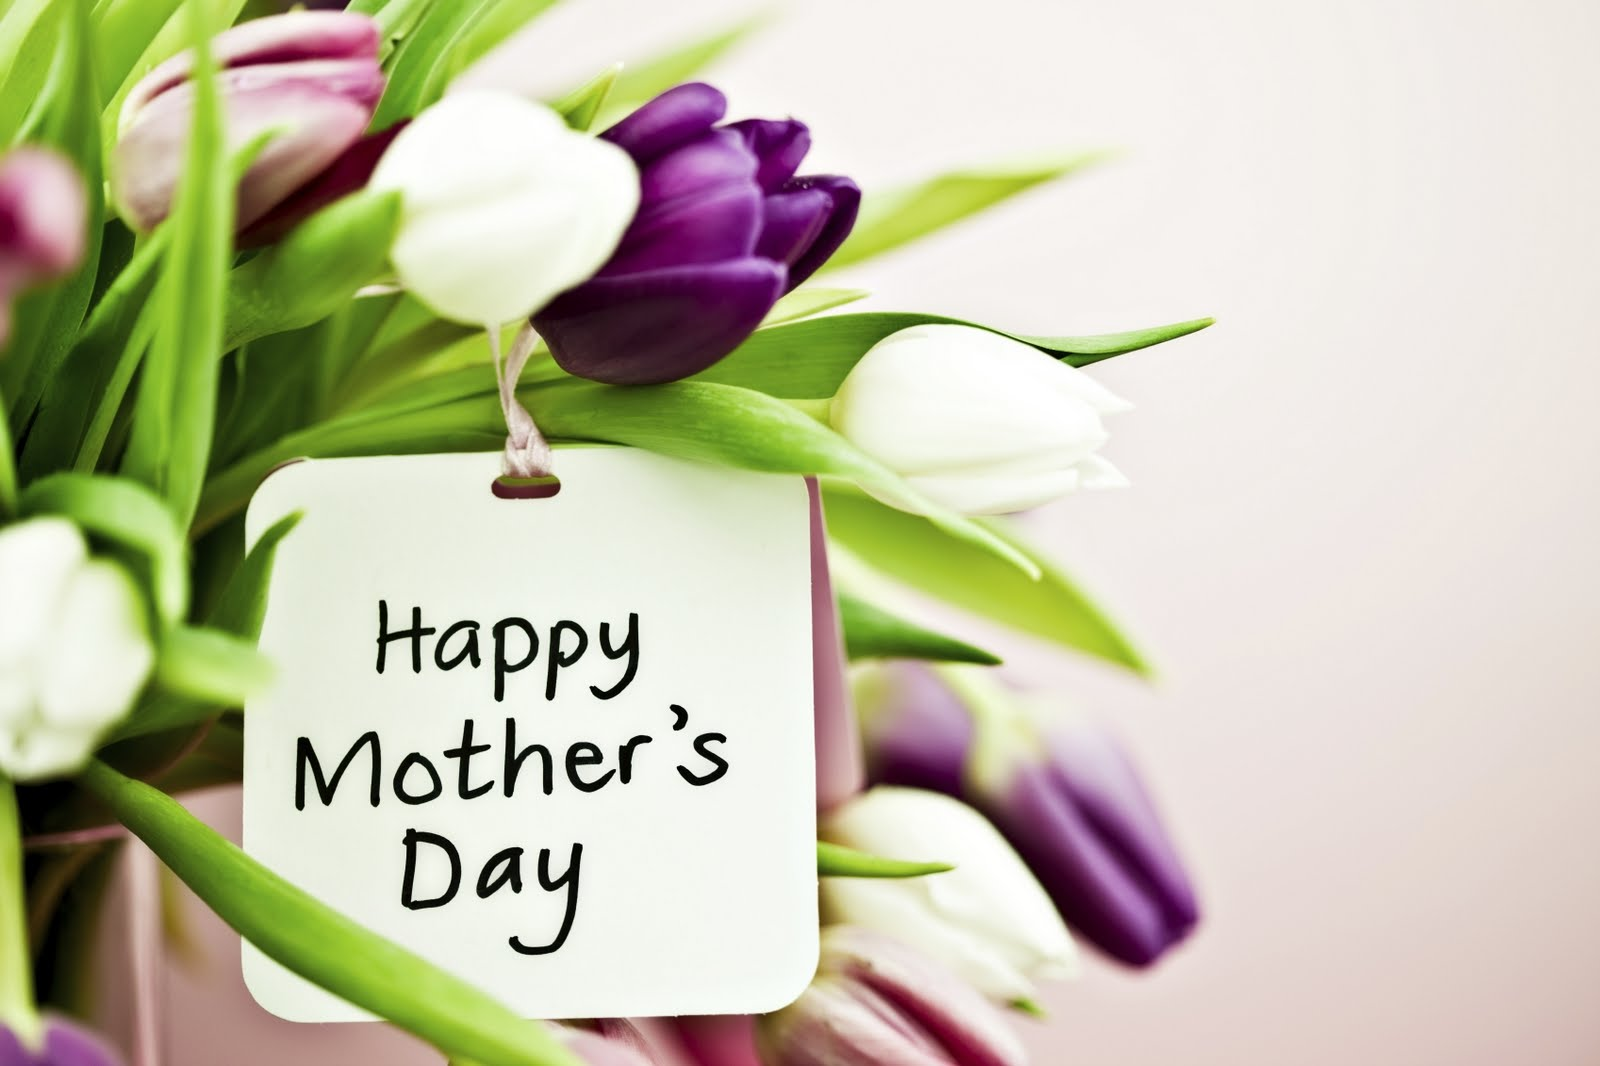 florist mother's day marketing ideas  floranext  florist, Beautiful flower